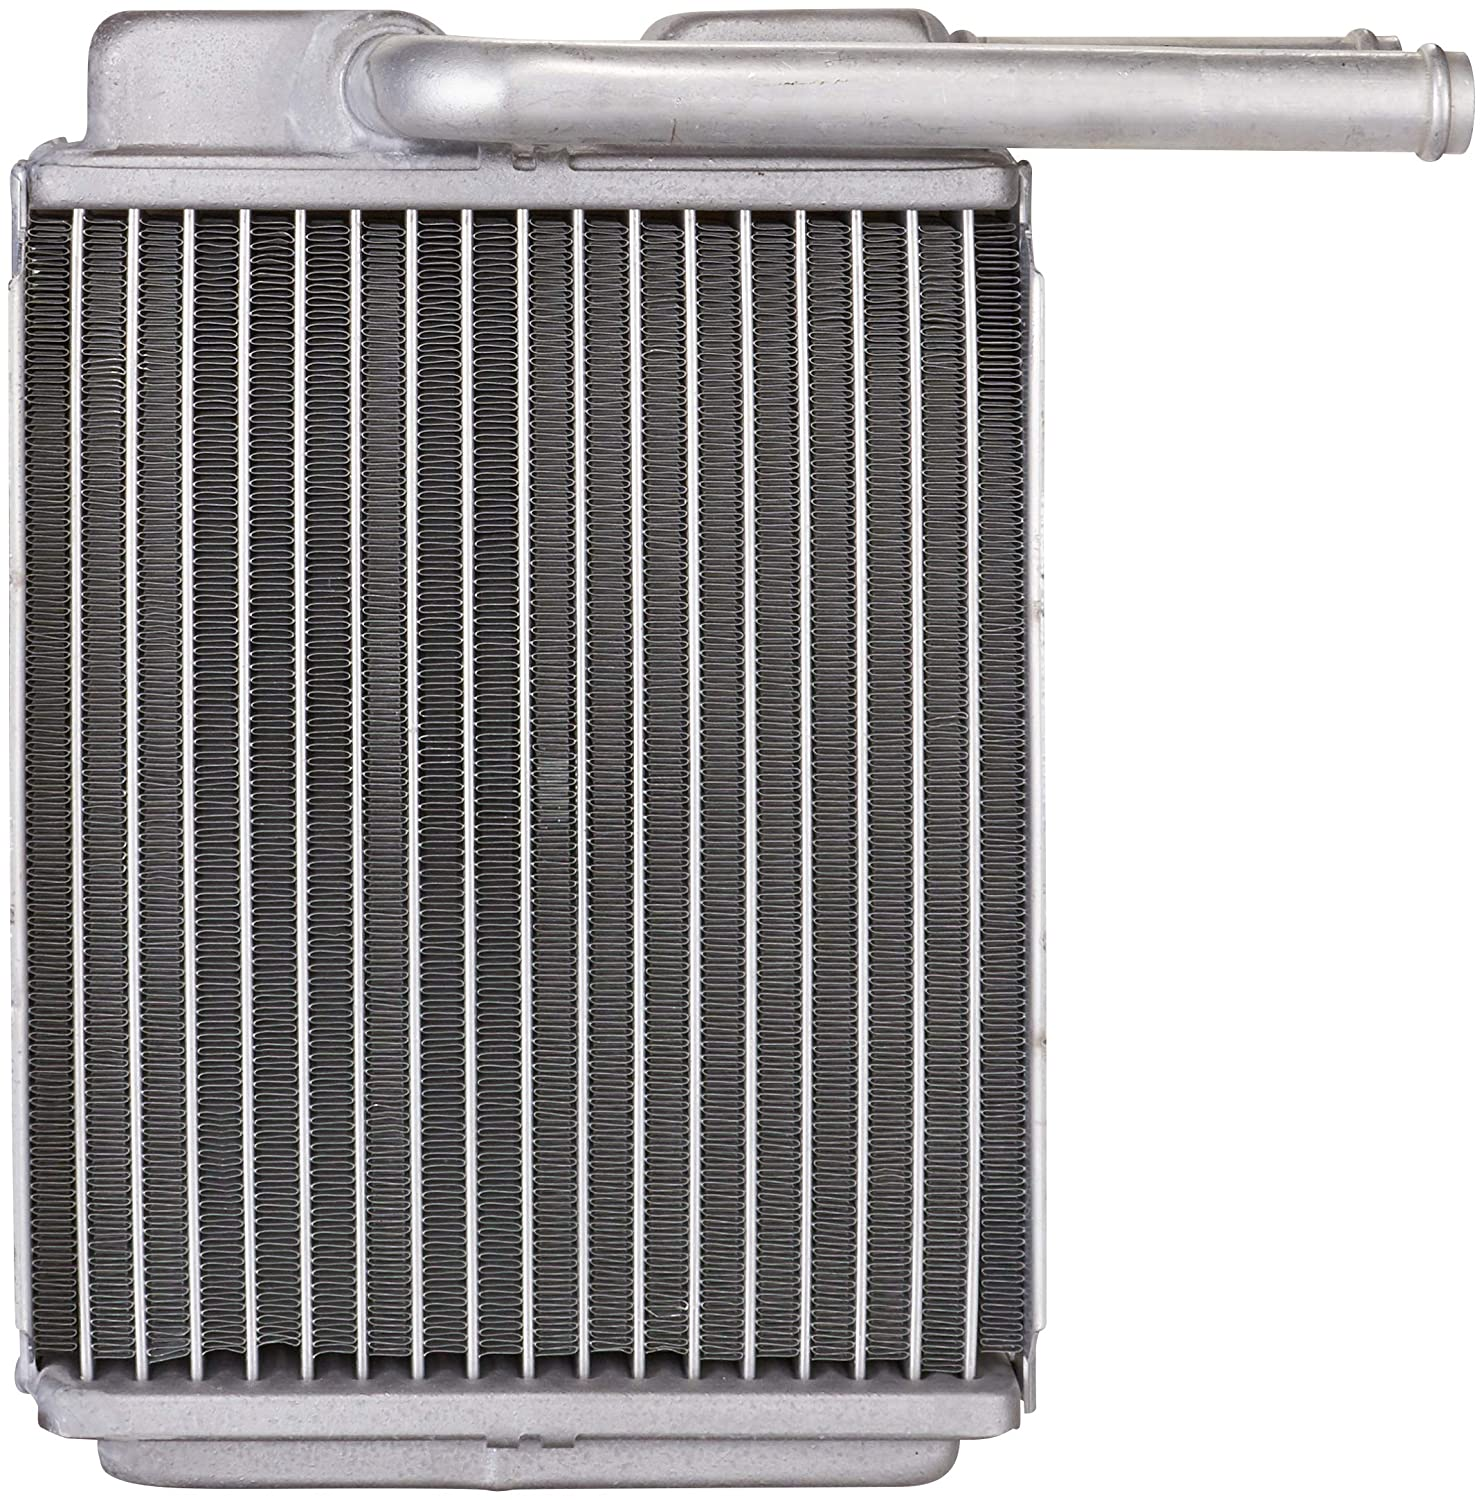 Spectra Premium 94571 Heater Core for Ford Mustang/Thunderbird SPR94571